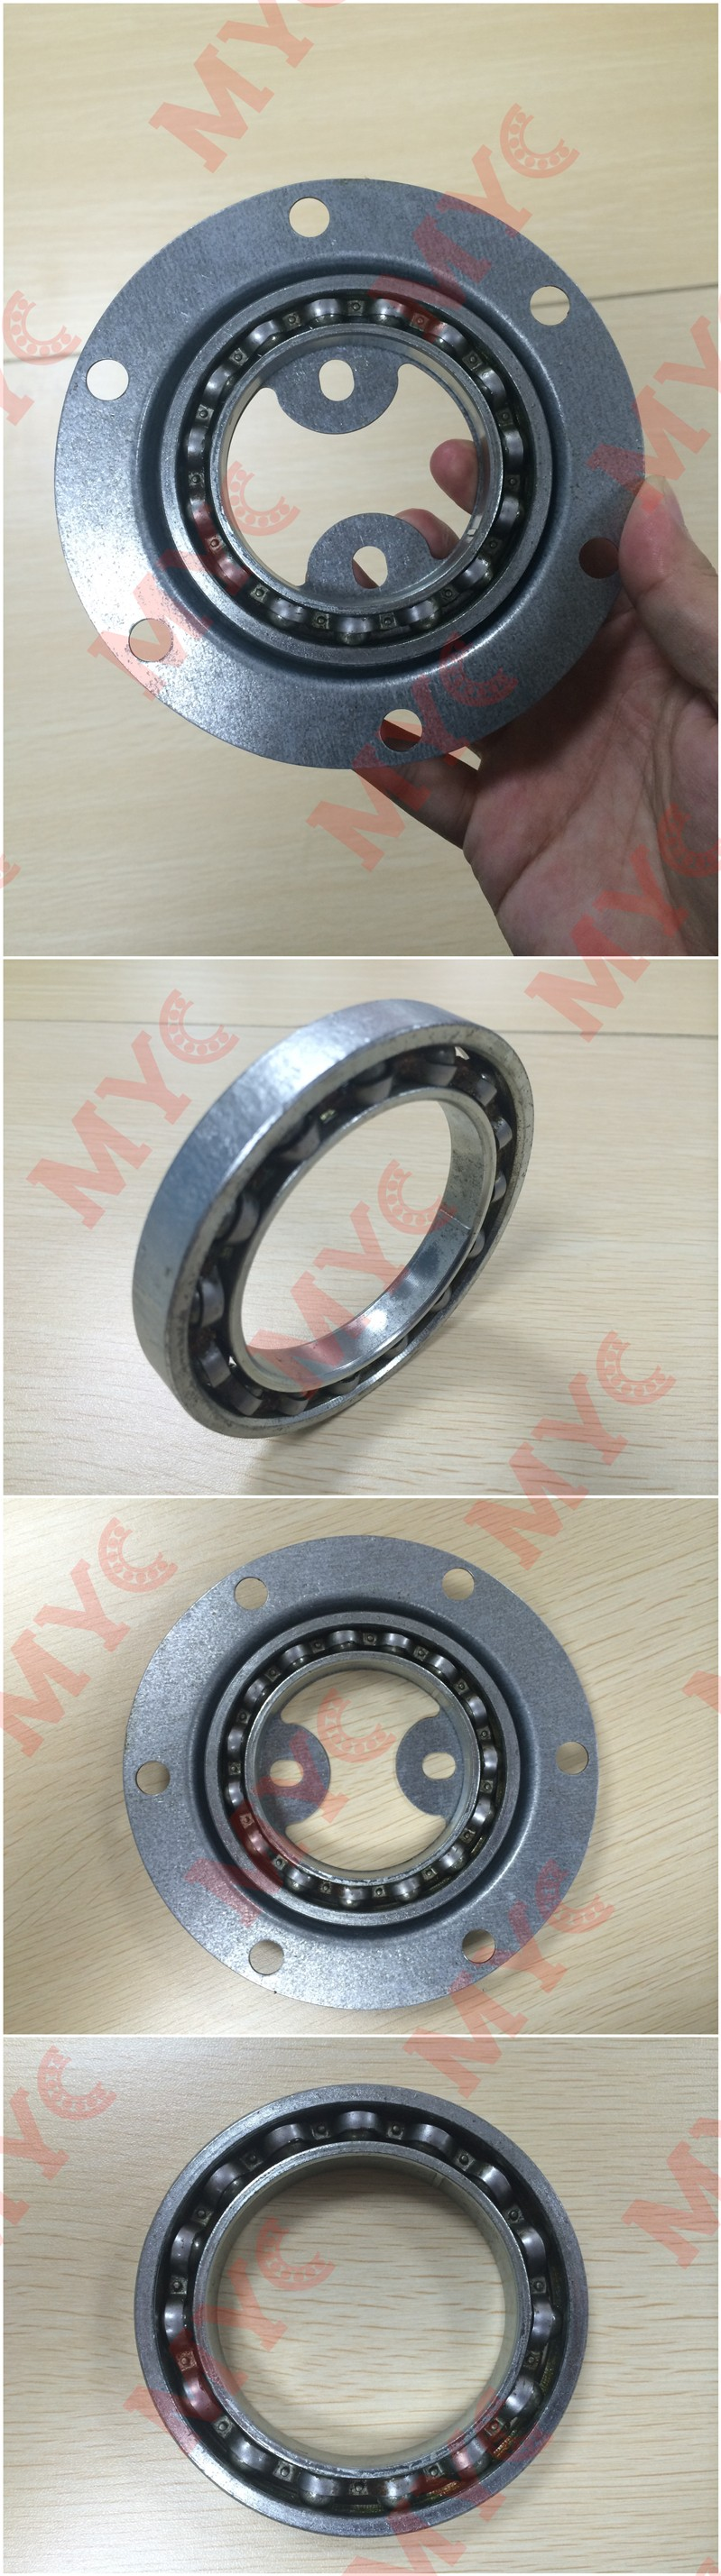 Alibaba recommend Iron Bearing Zinc Plated For Rolling Door